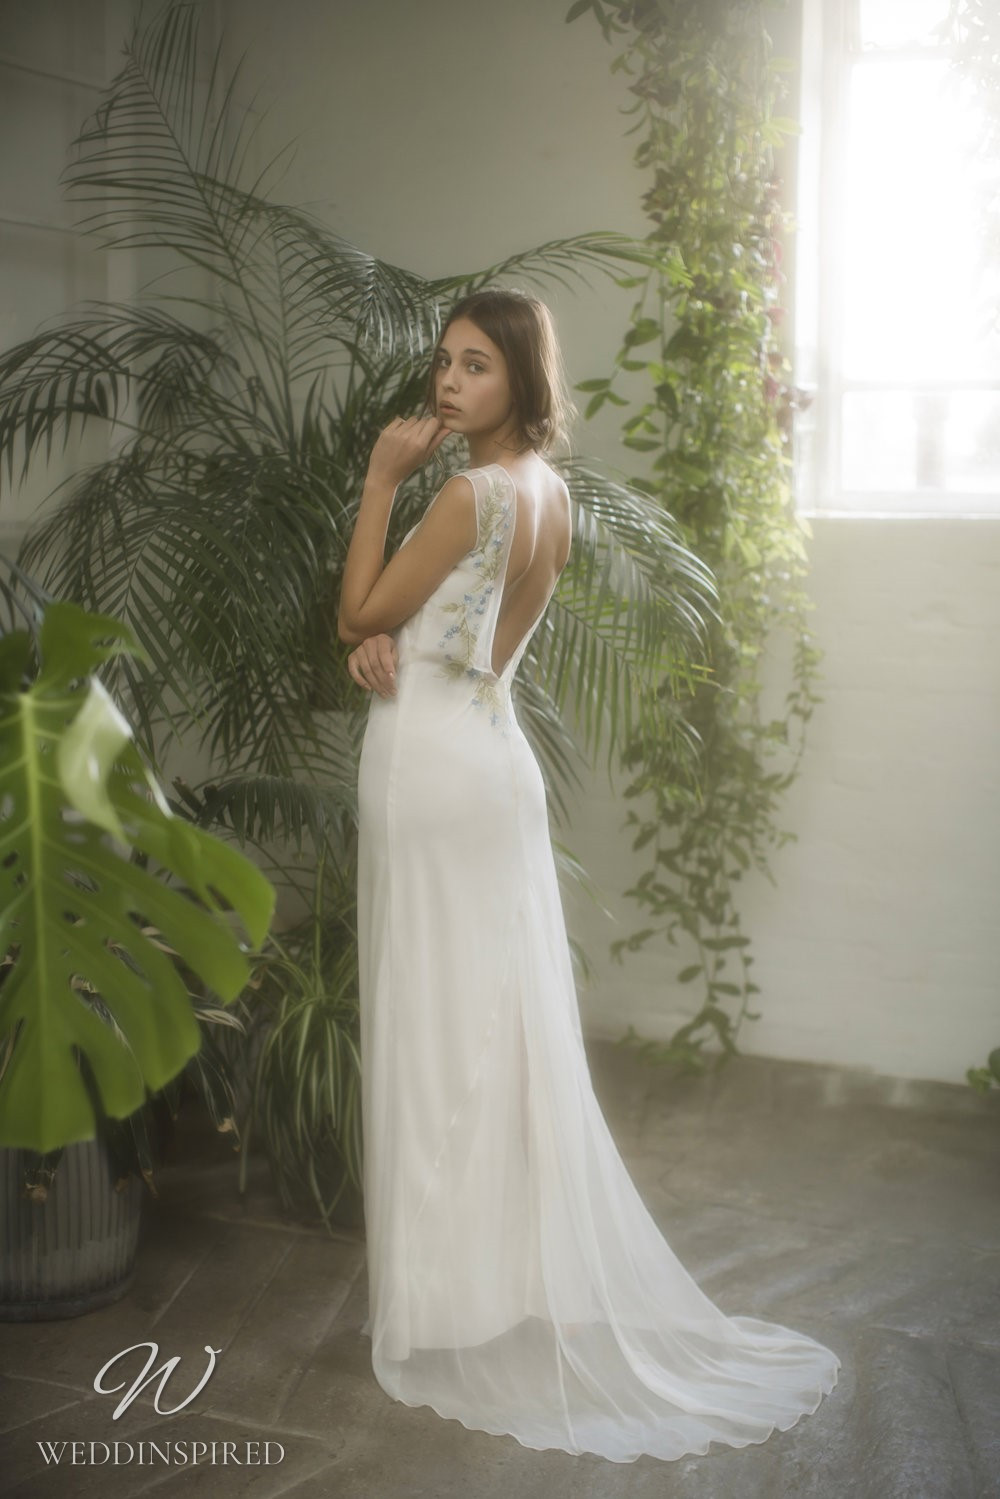 An Olwen Bourke loose fitting chiffon sheath wedding dress with a low back and floral embroidery